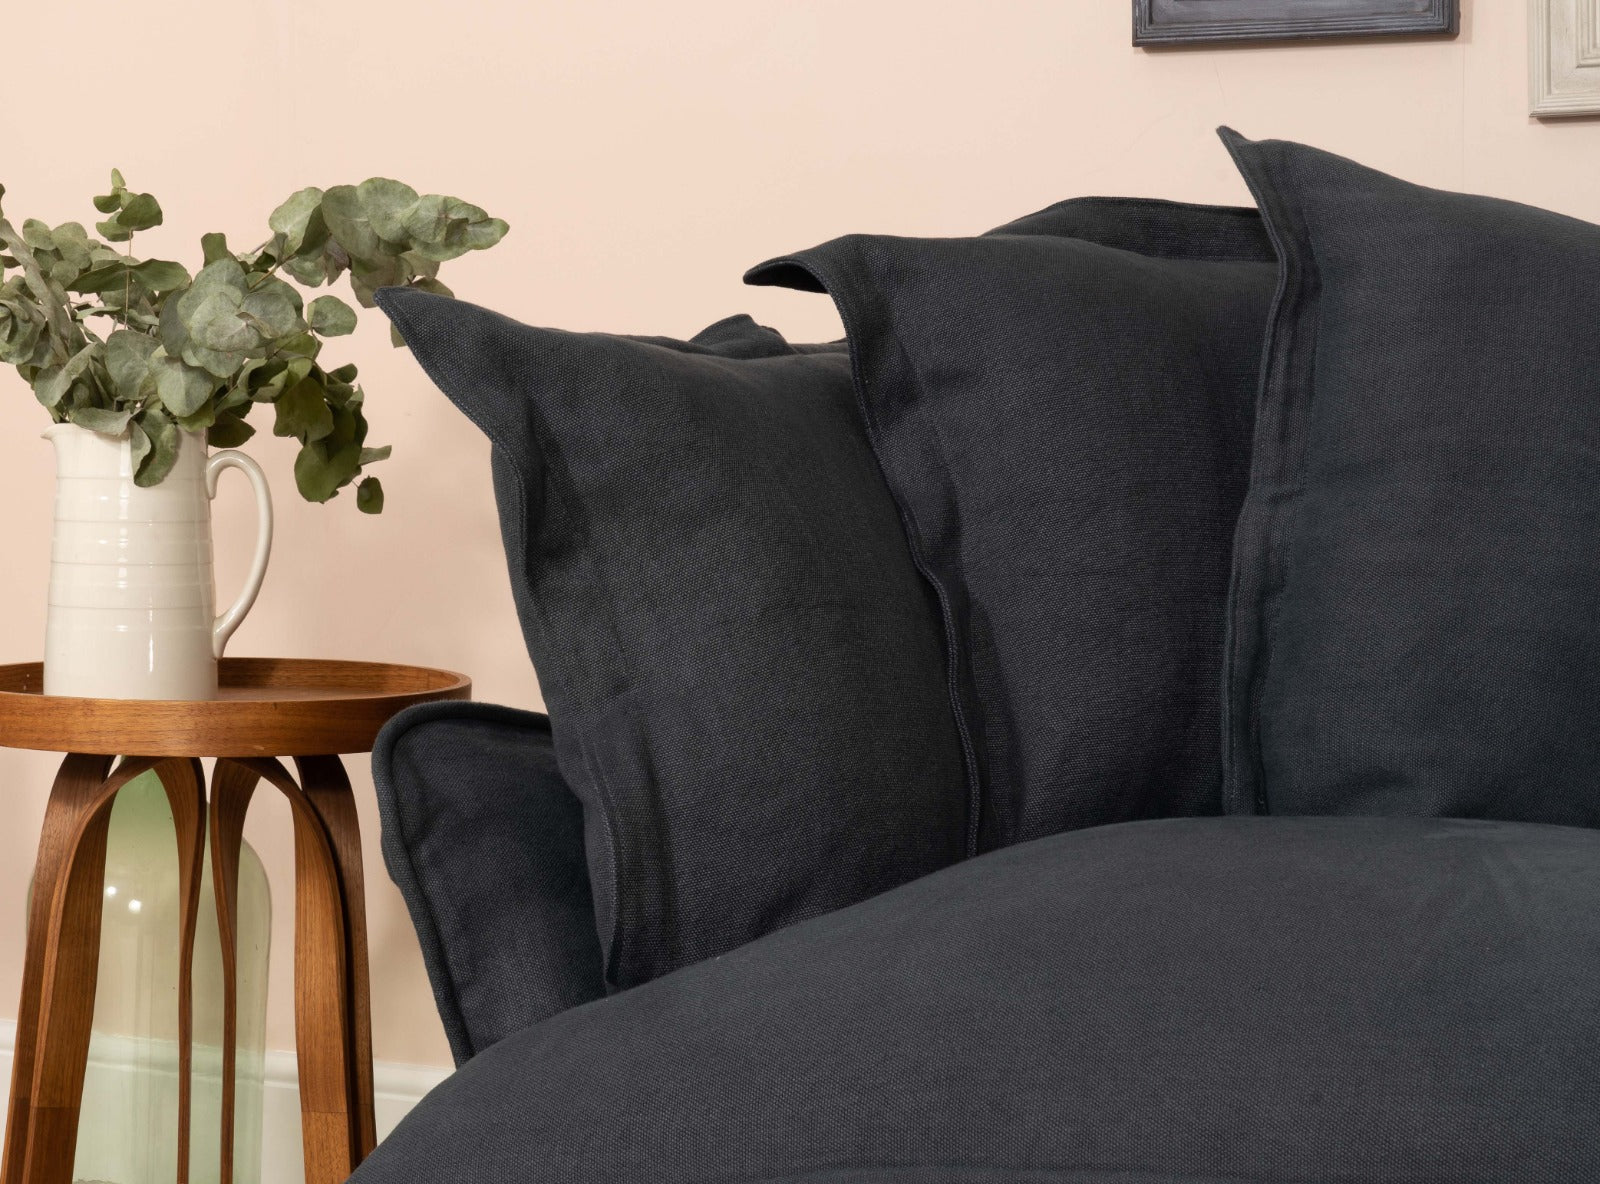 Close up image of Song Sofa in Hawk's Eye 100% Linen with scatter cushions with a pillow edge